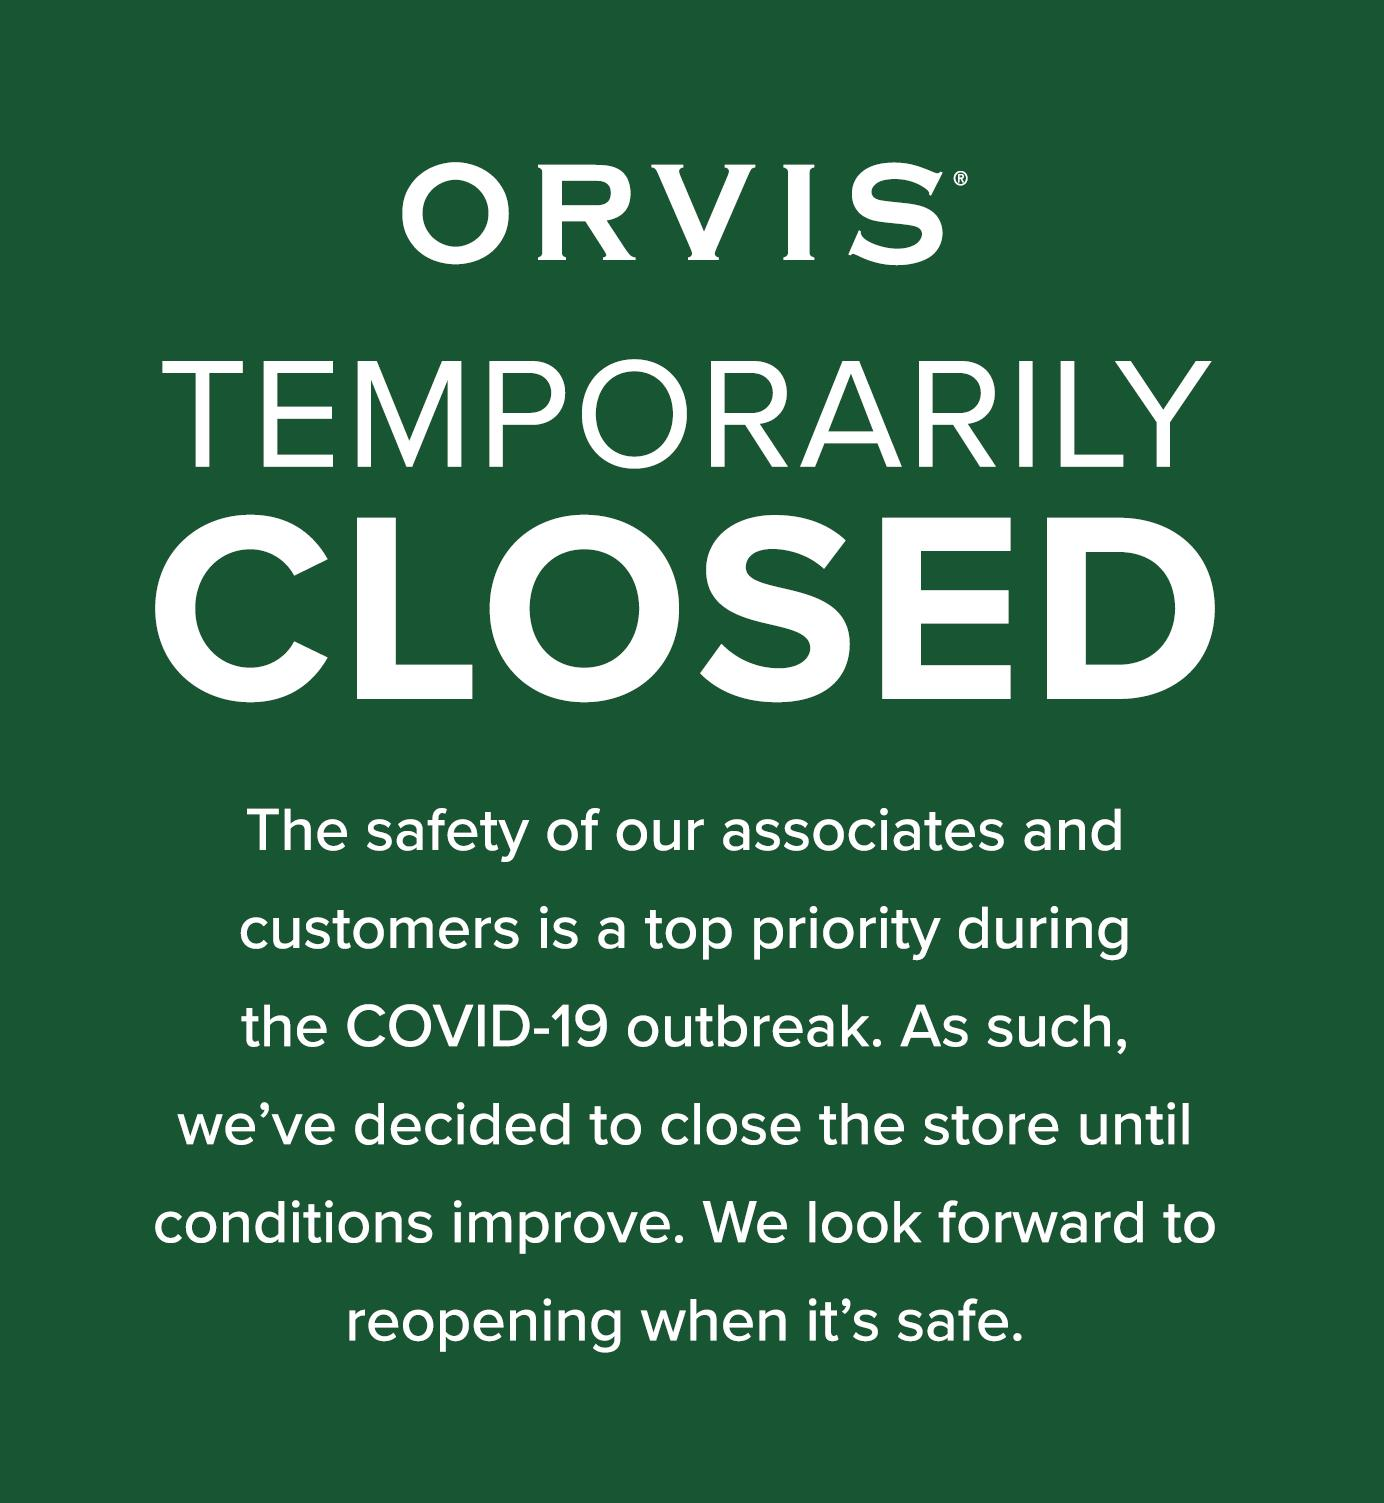 ORVIS RETAIL STORE TEMPORARILY CLOSED - The safety of our associates and customers is a top priority during the COVID-19 outbreak. As such, we've decided to close the store until conditions improve. We look forward to reopening when it's safe.